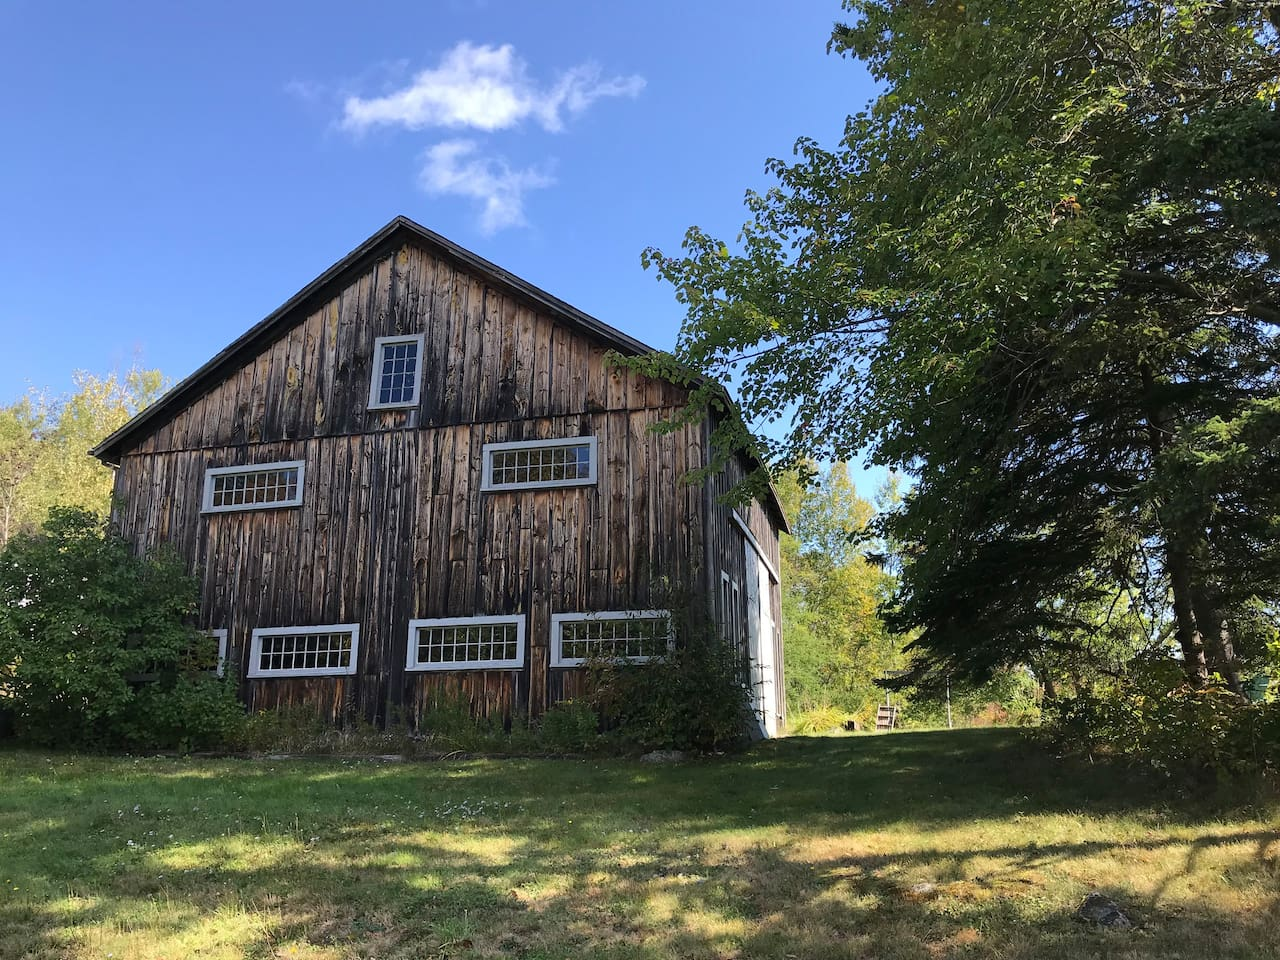 West face of the barn